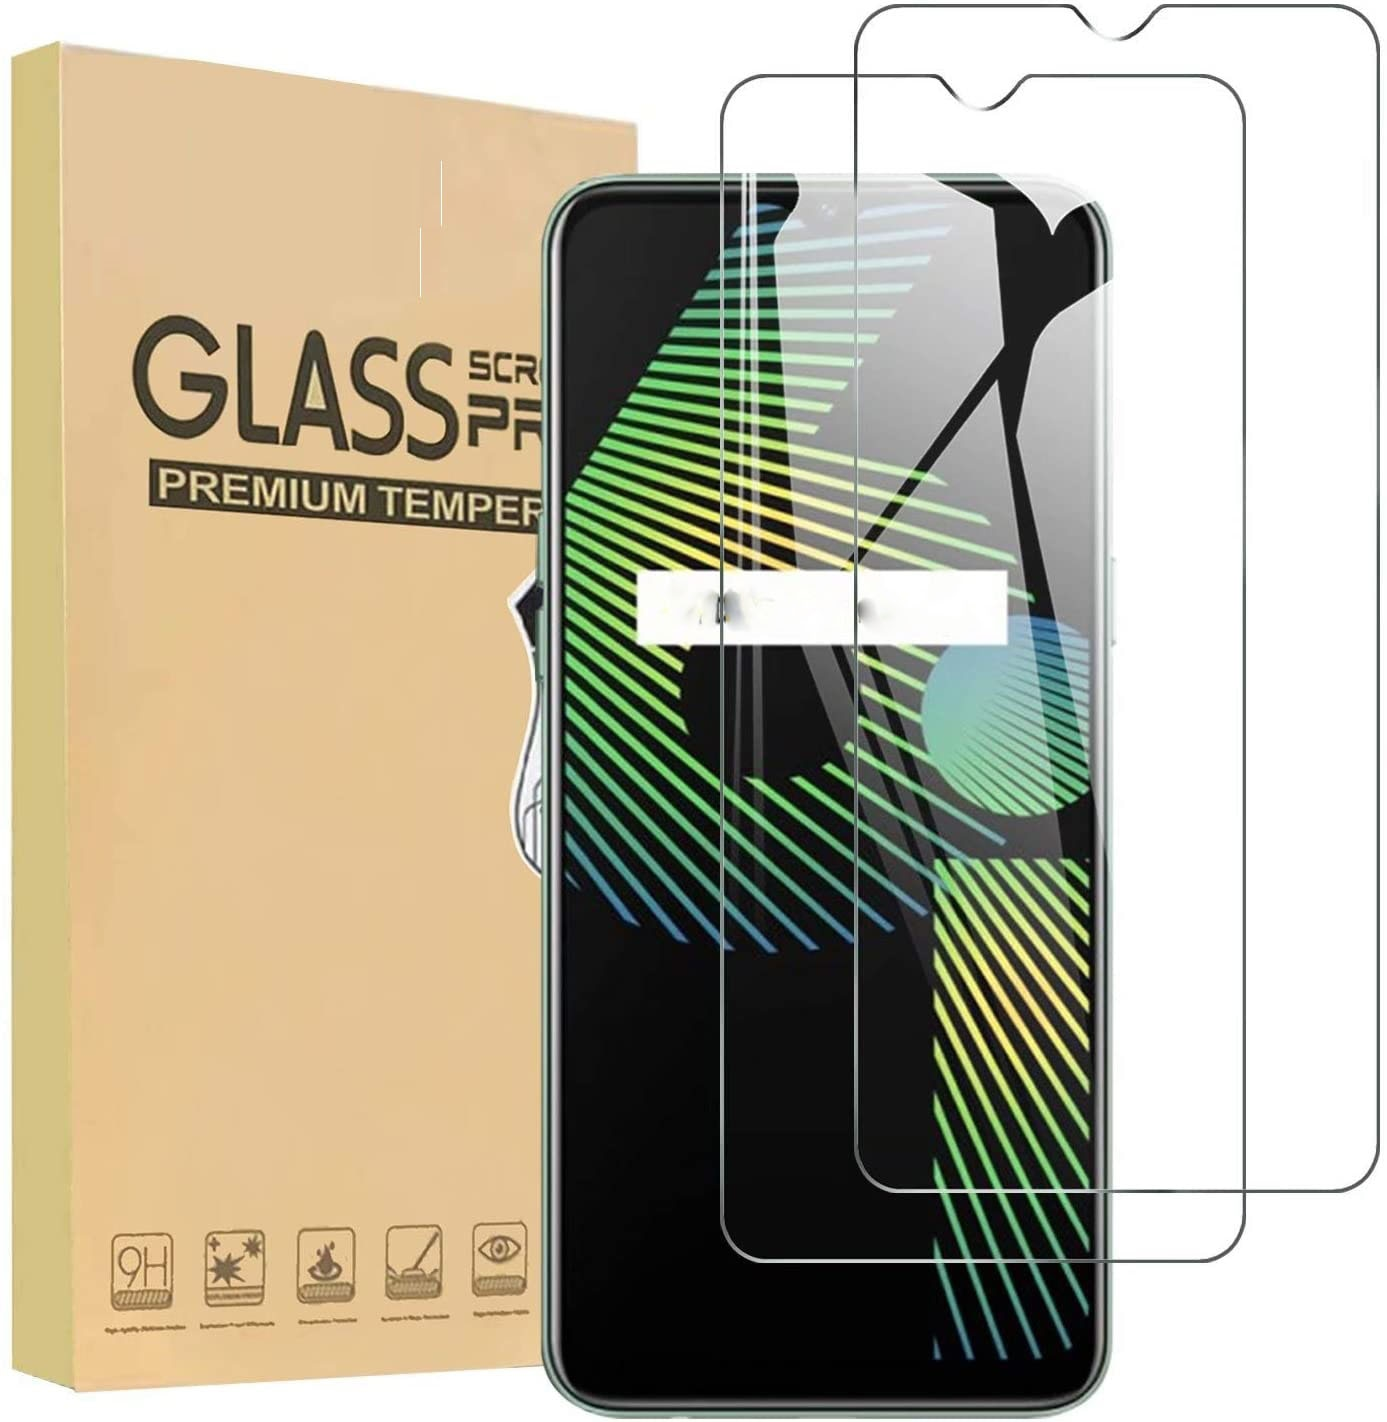 Protective Glass For Realme 7 Pro 5G 7i Screen Protector For Realme 6 Pro 6s 6i C3 C21 5 Pro 5i 5S Tempered Glass